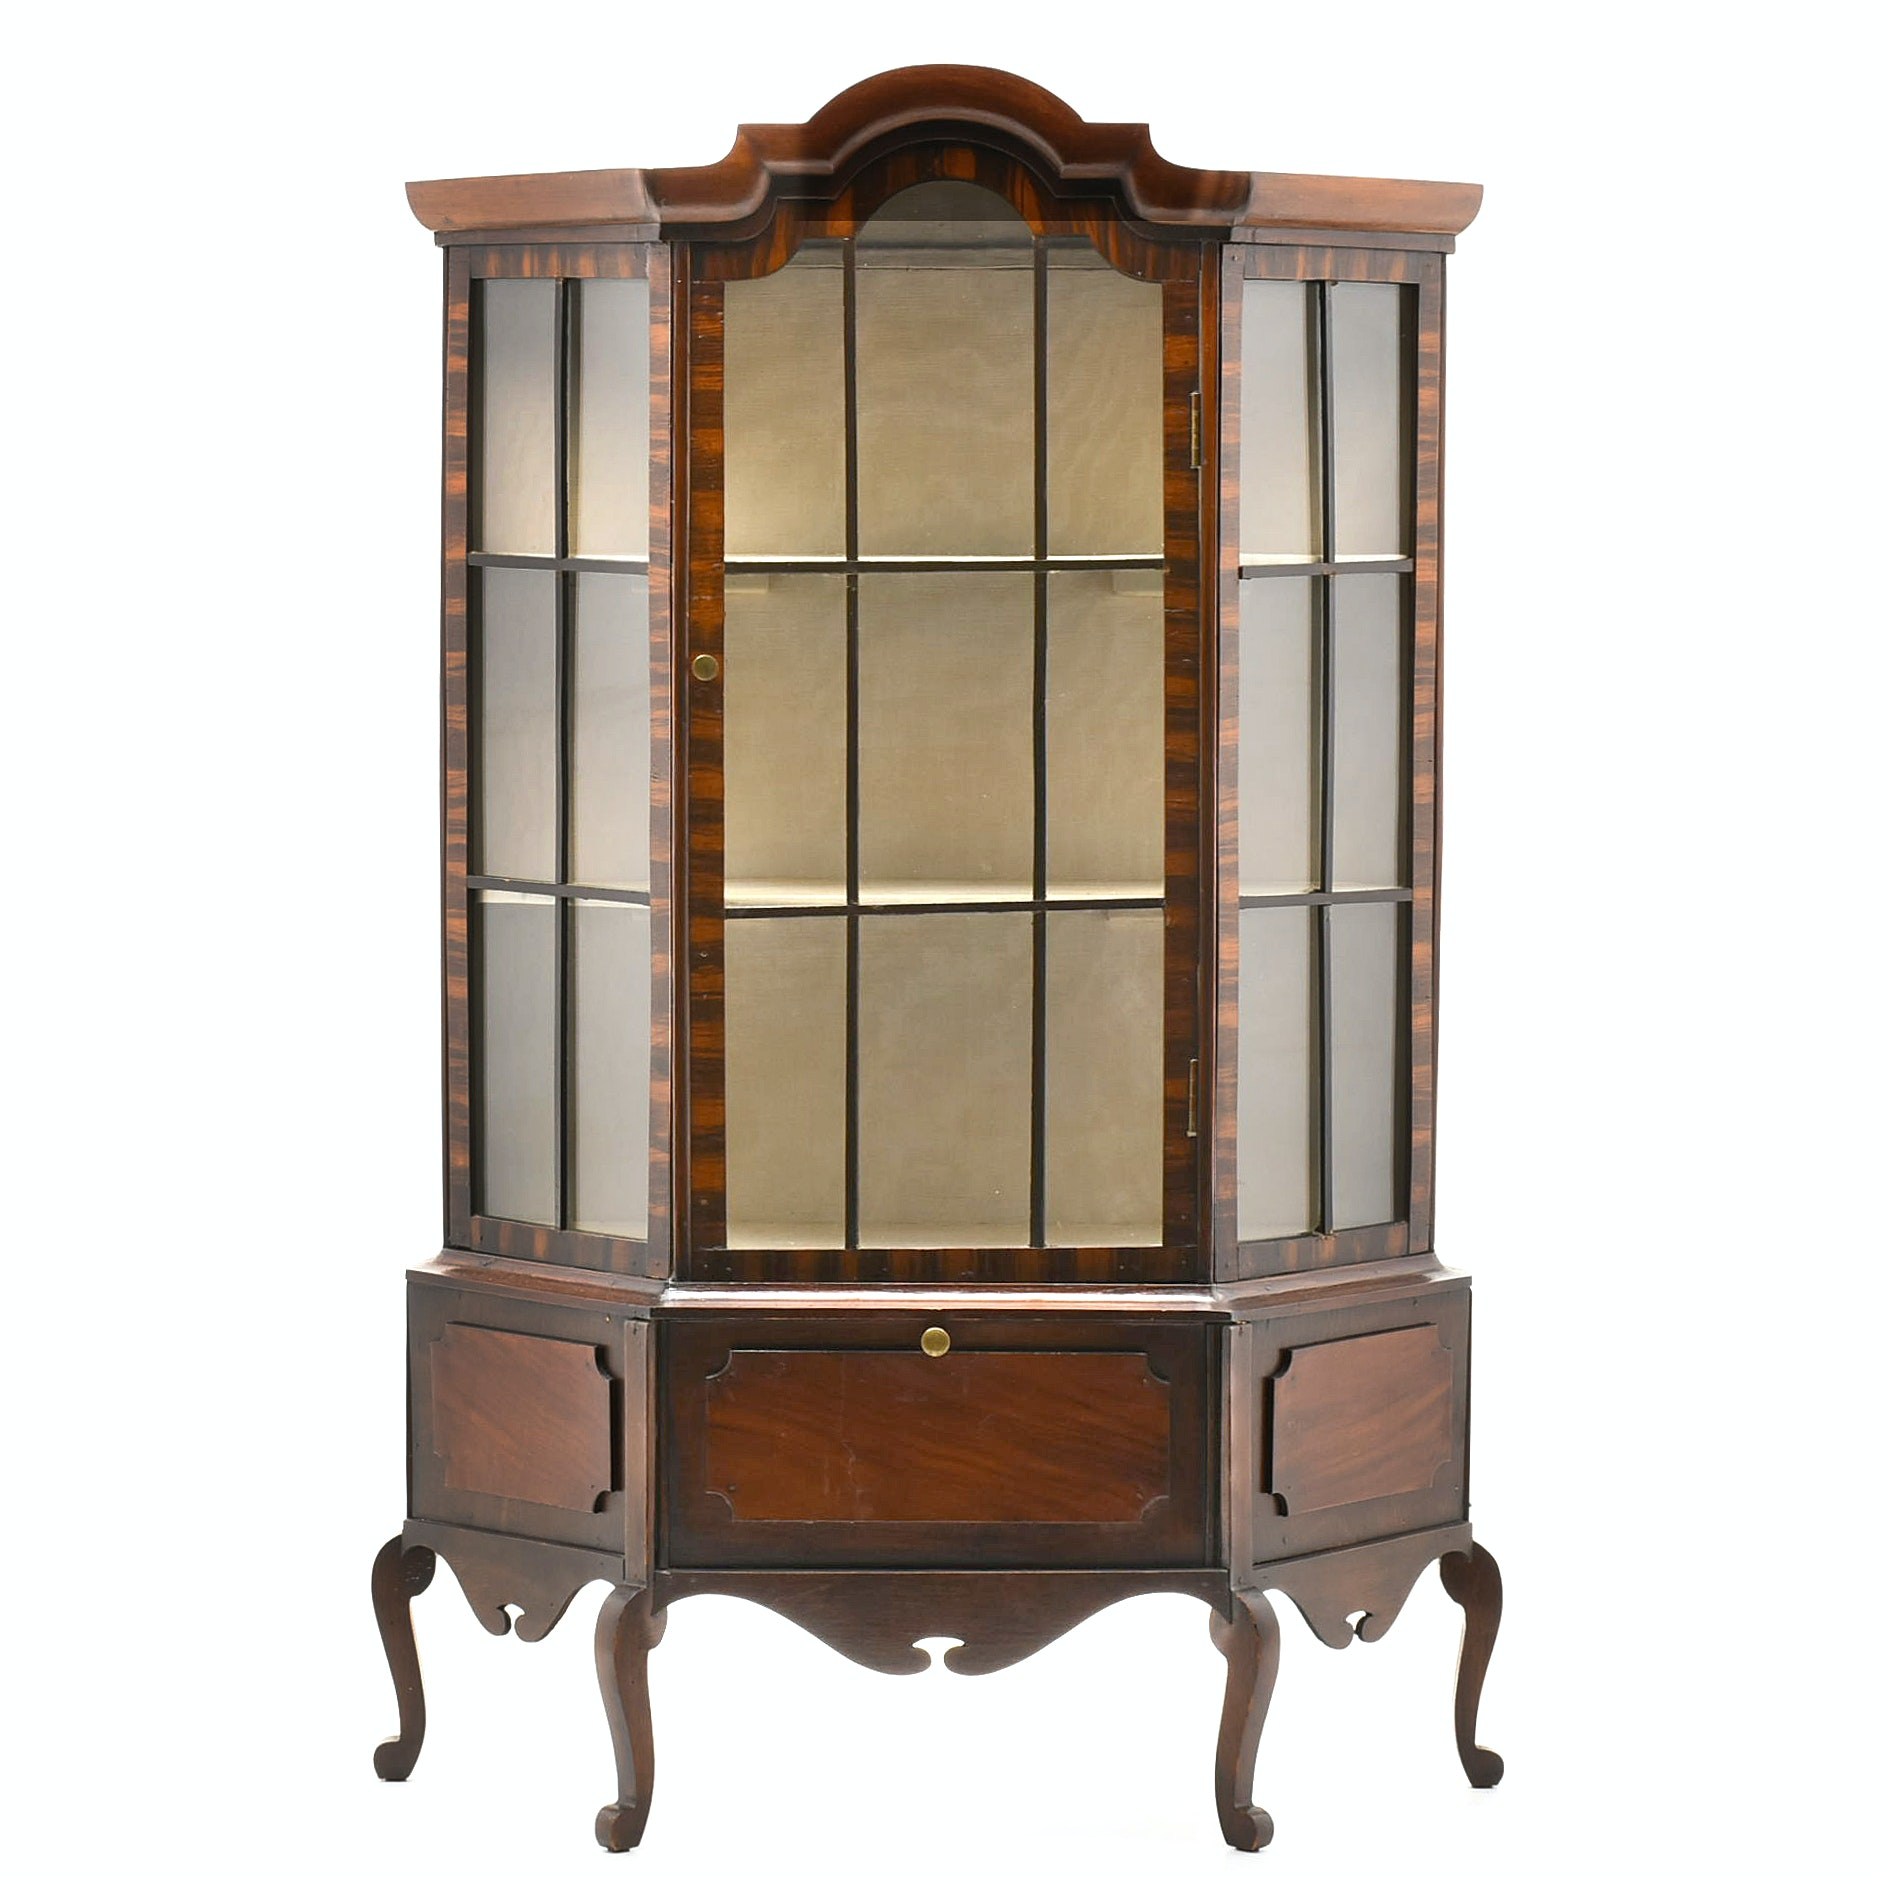 Queen Anne Style Benchmade Child's Display Cabinet, 20th Century